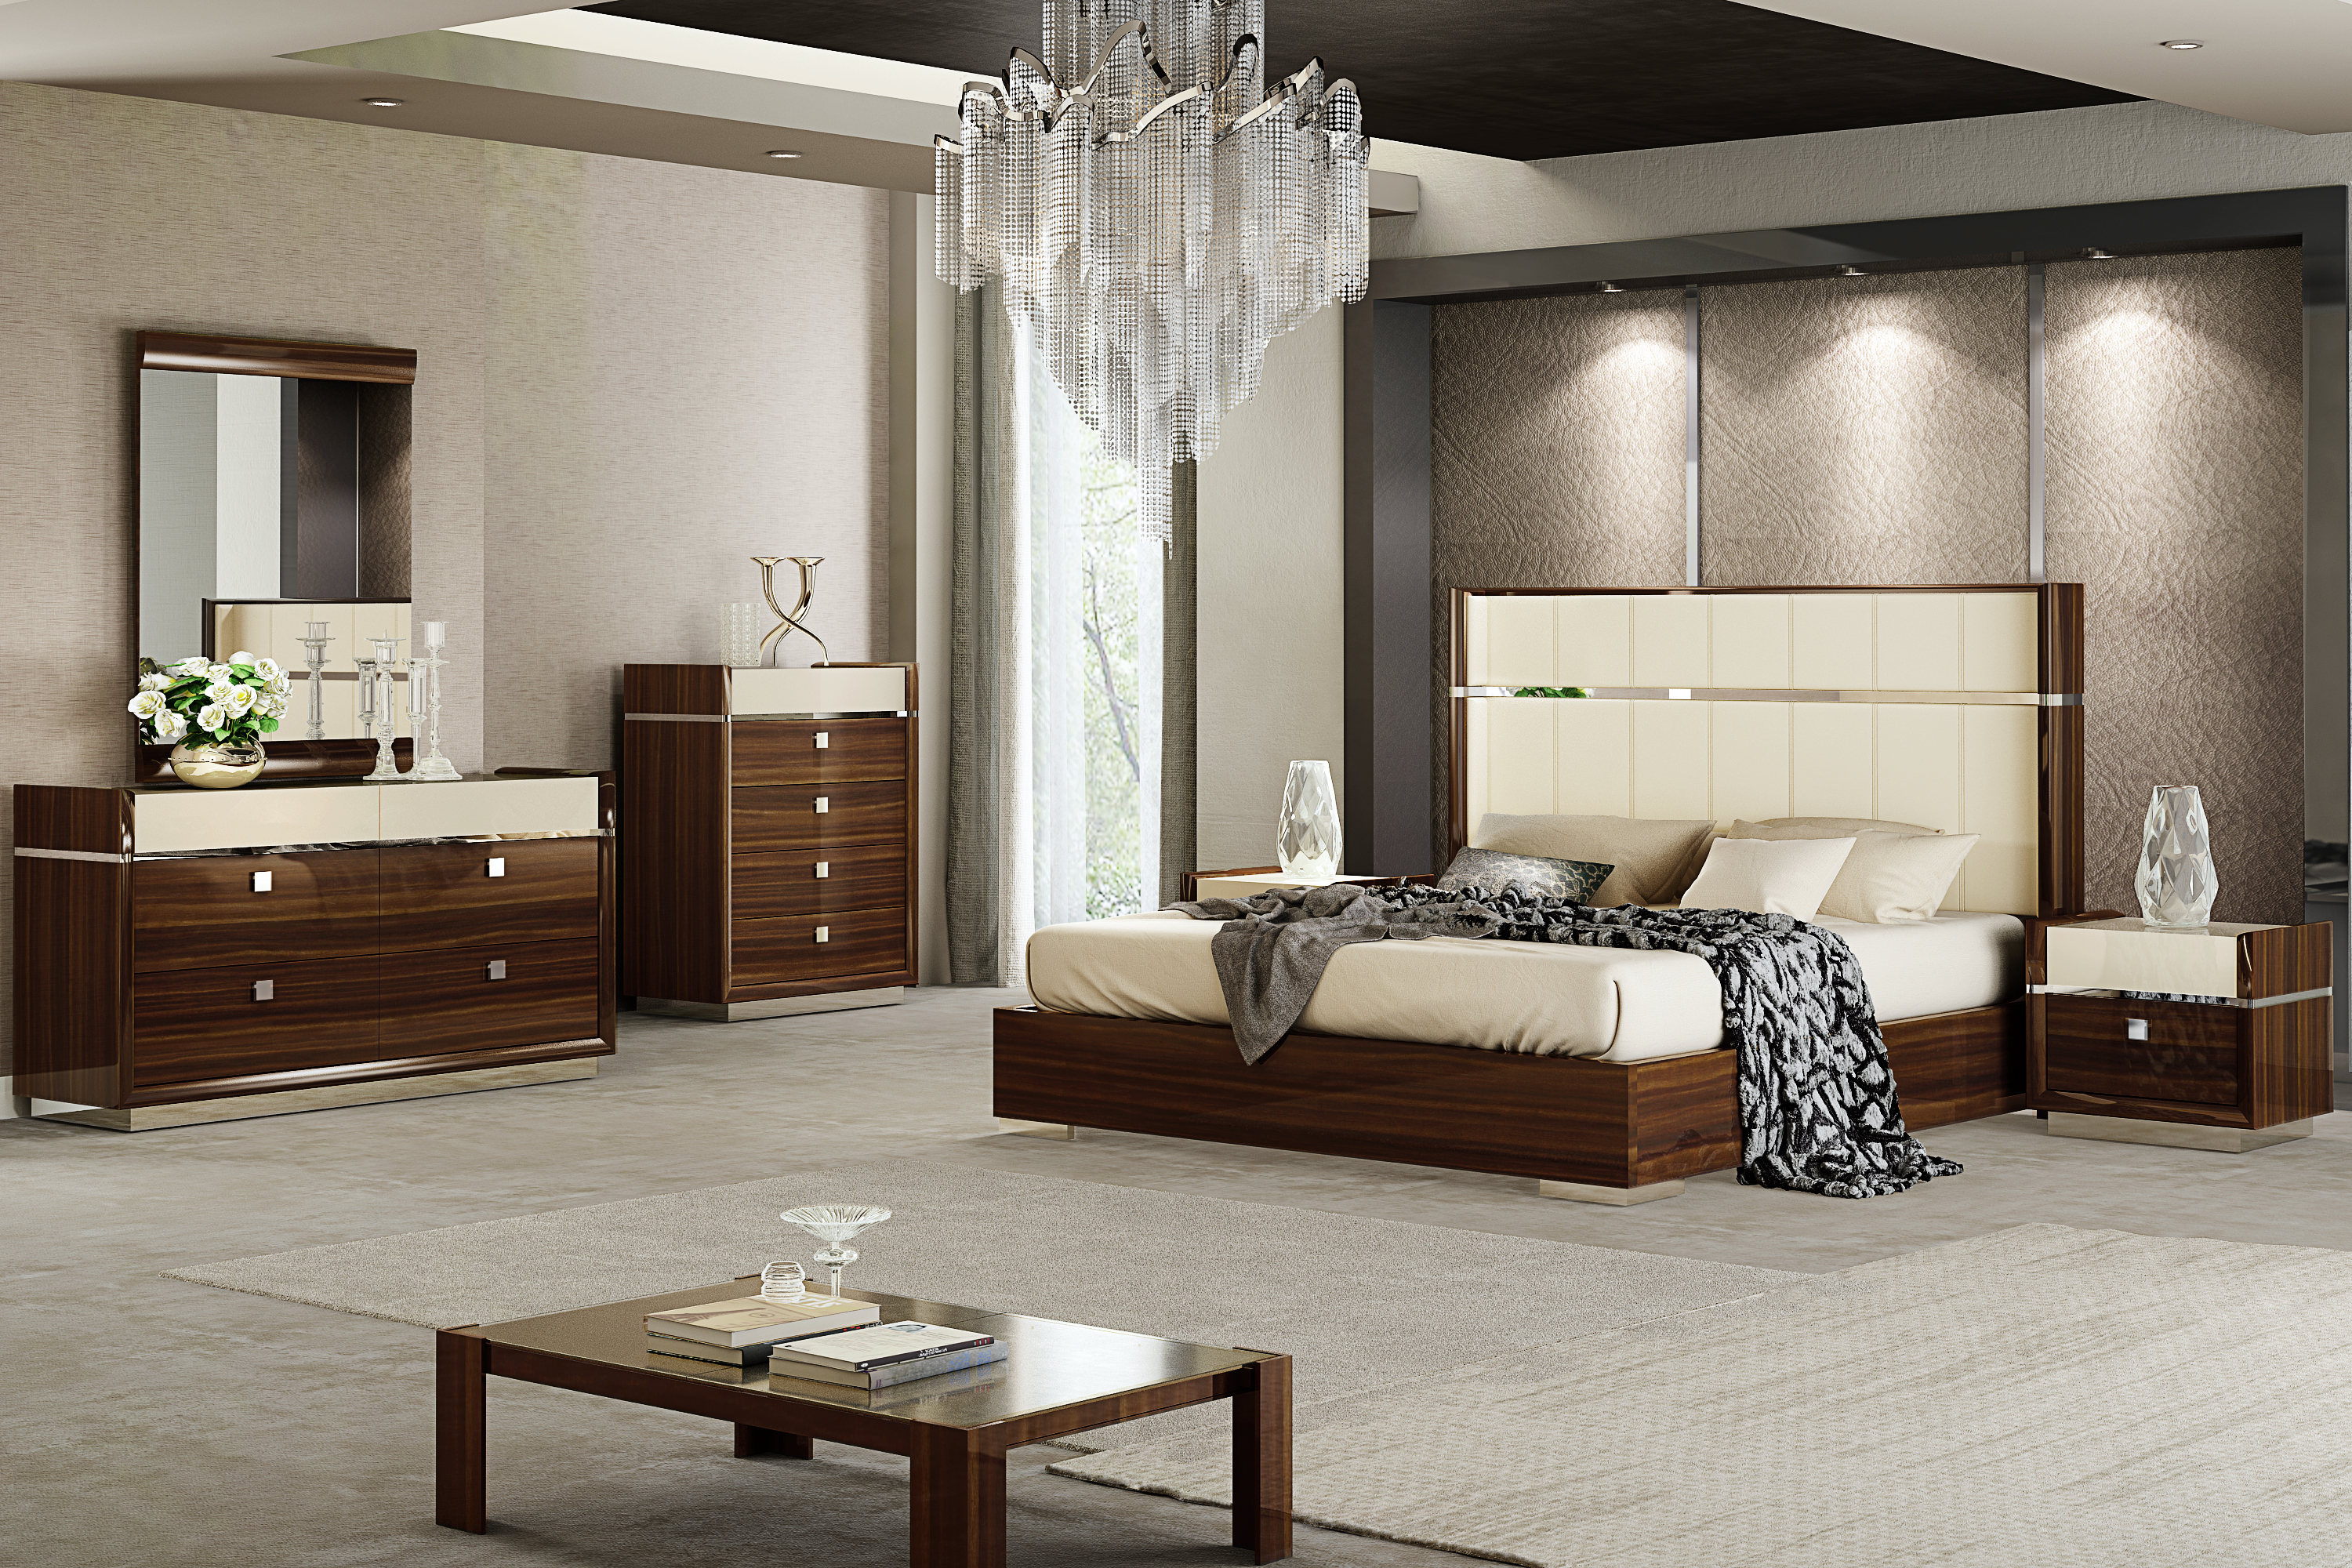 Affordable Modern Furniture Toronto 现代家私 Modern Furniture Toronto 多伦多现代家具